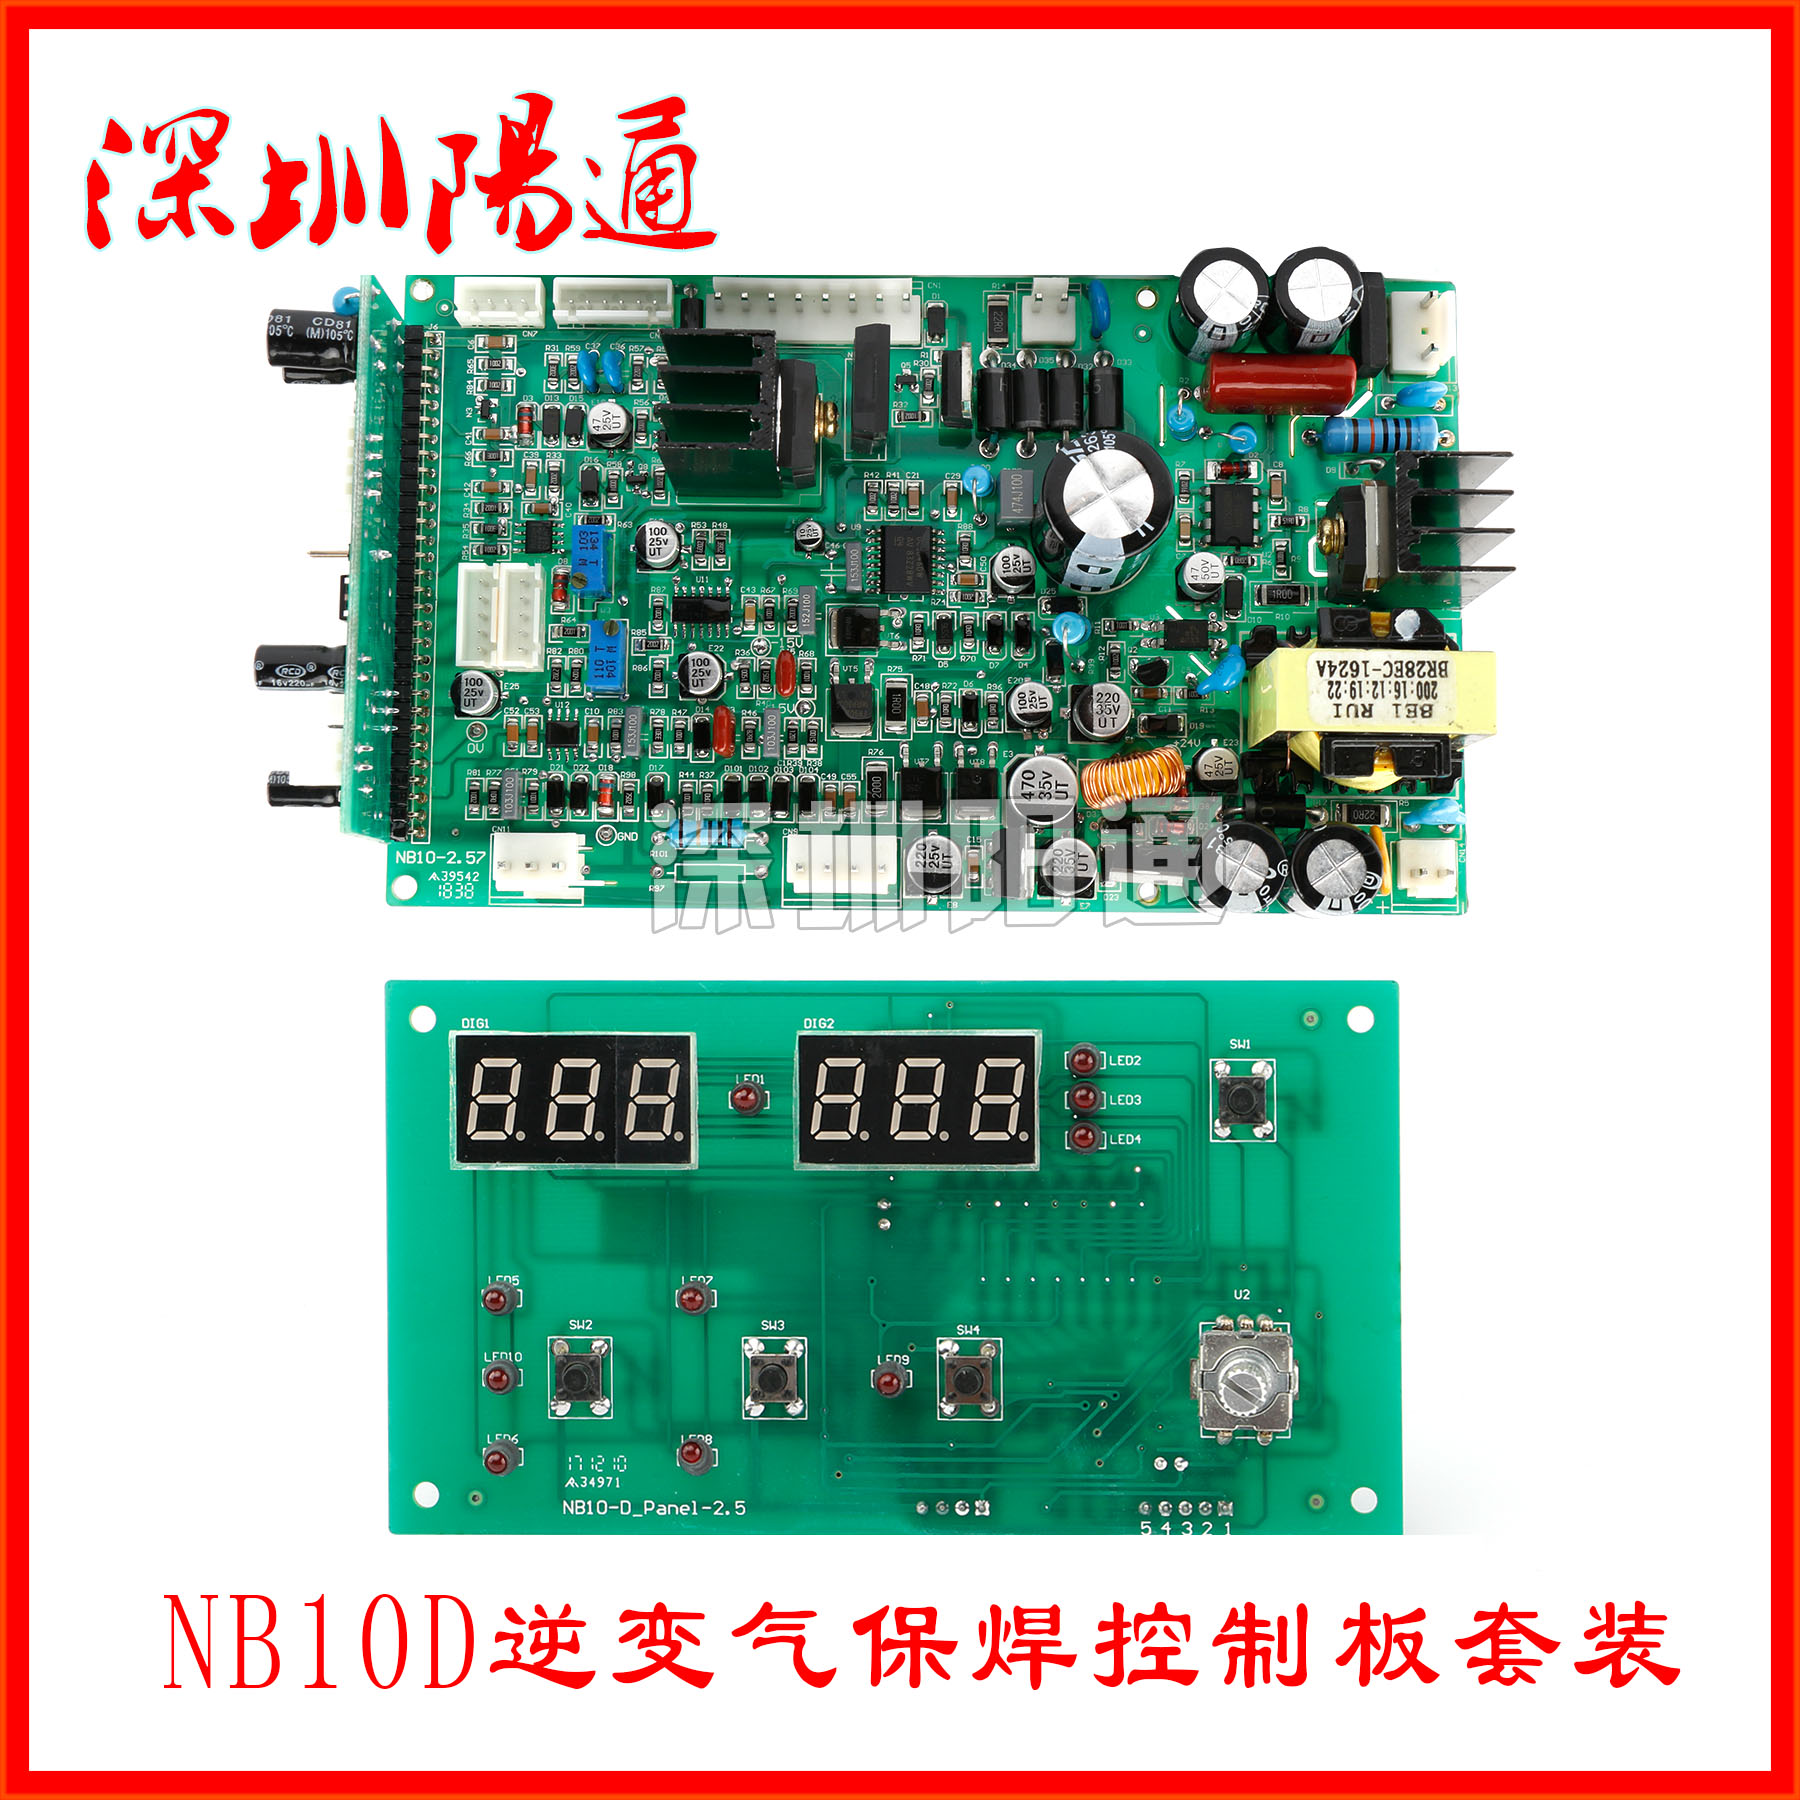 Nbc250 315 Mos Inverter Carbon Dioxide Gas Welder Control Panel Circuit Board Spare No Cost At Any Cost Power Tool Accessories Tools